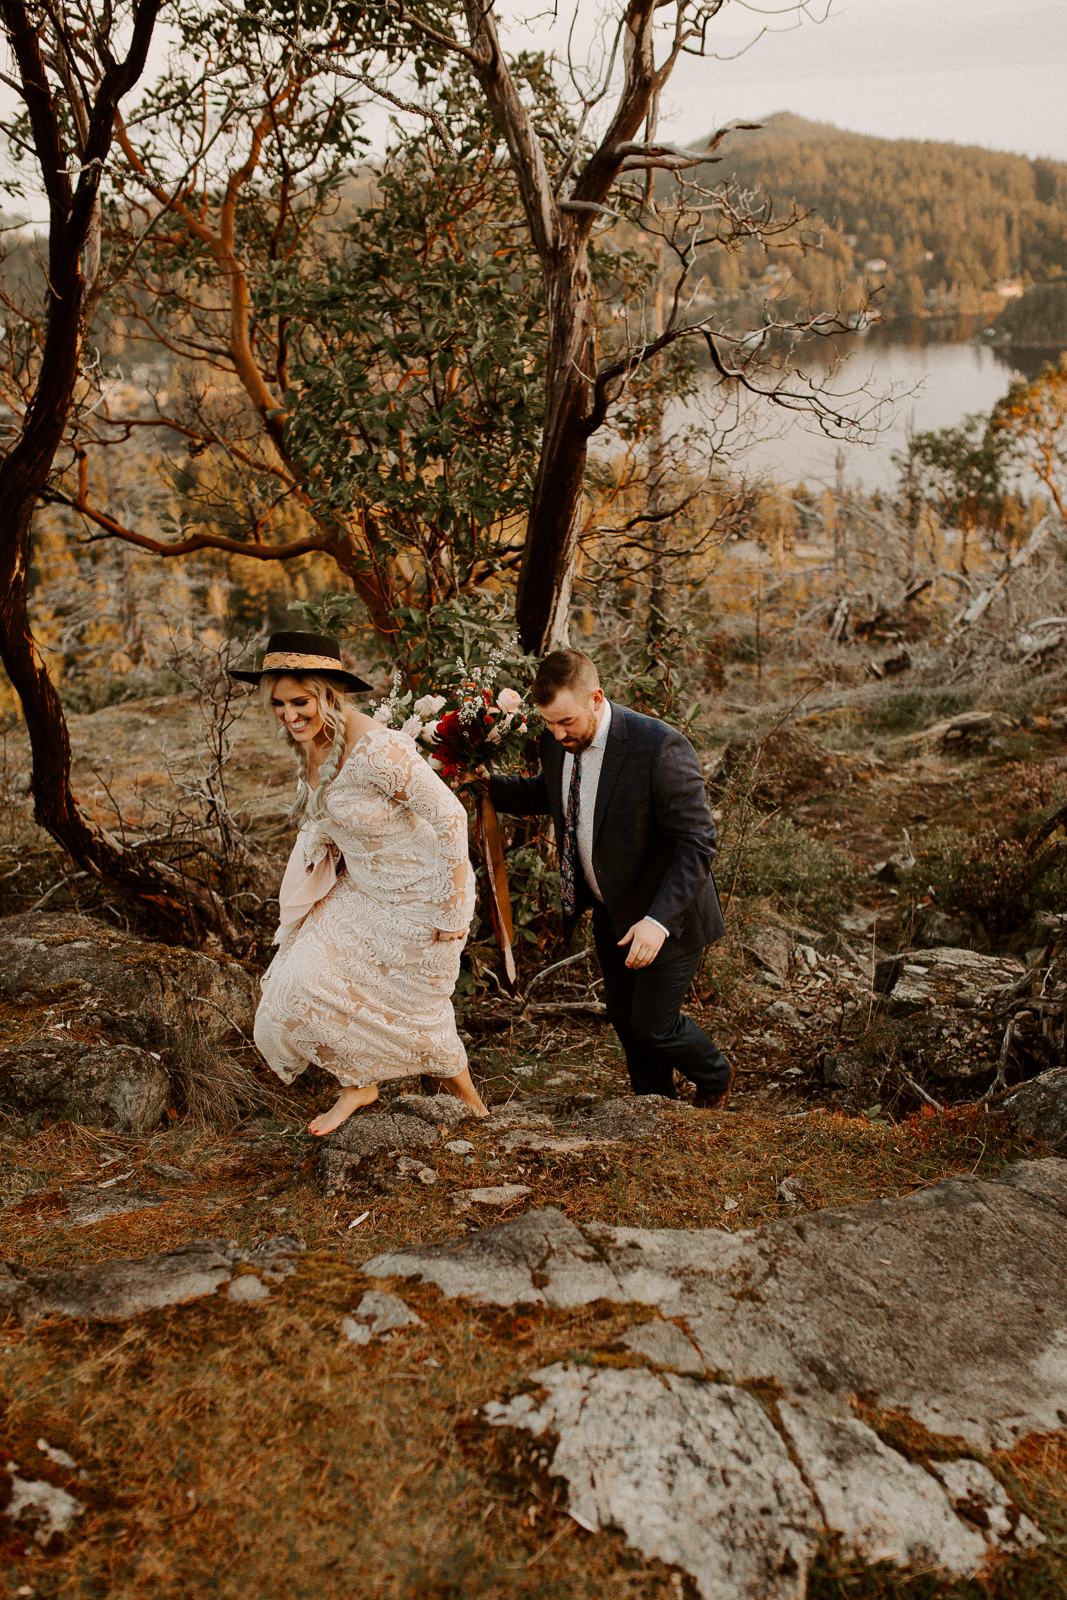 Luke Lambertson Photo_BritishColumbia_Canada_AdventurousCouple_Elopement_IMG-8333.jpg